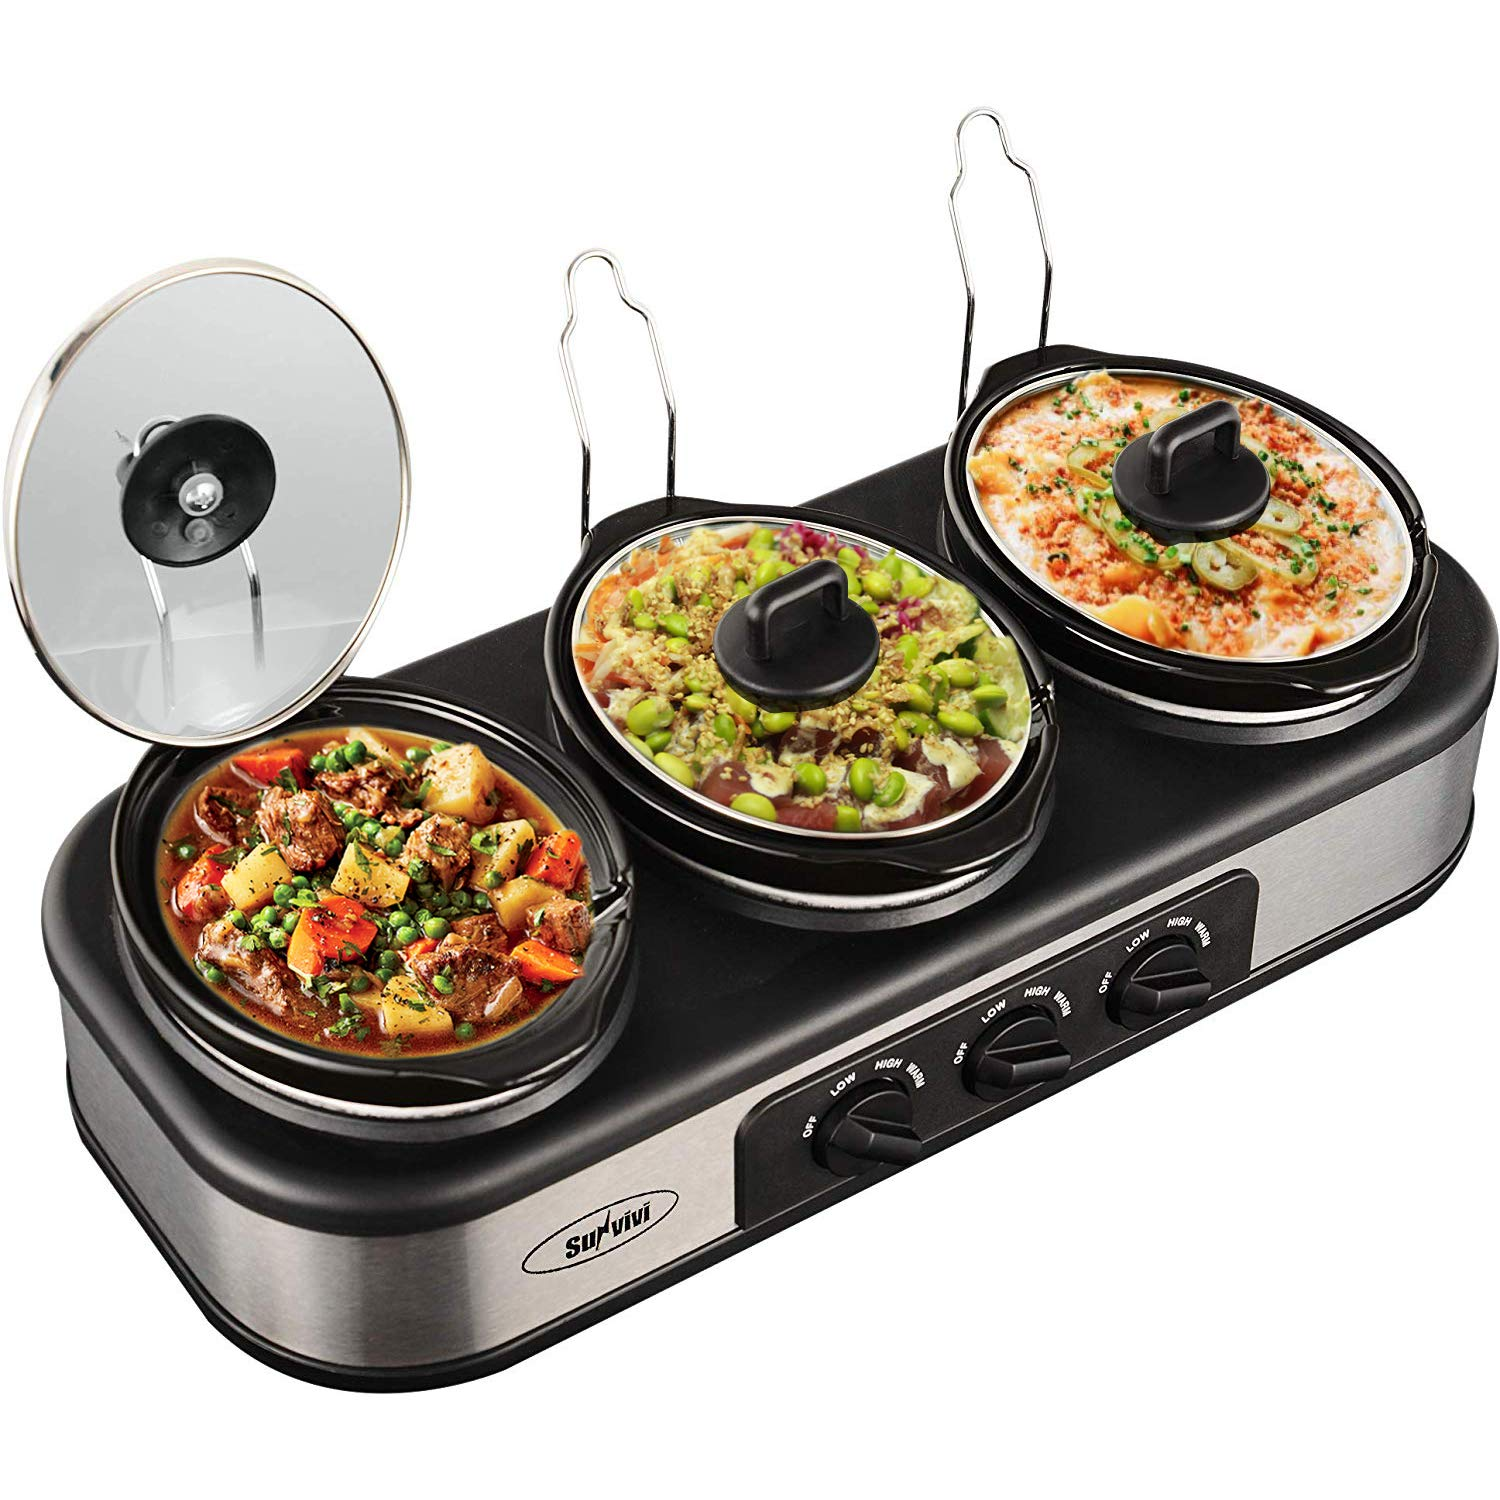 Triple Slow Cooker with Non-Skid Feet, 3 1.5 QT Slow Cooker Buffet Server, 3 Pots Food Warmer Adjustable Temp Lid Rests Stainless Steel Manual Silver for Parties Holidays Families